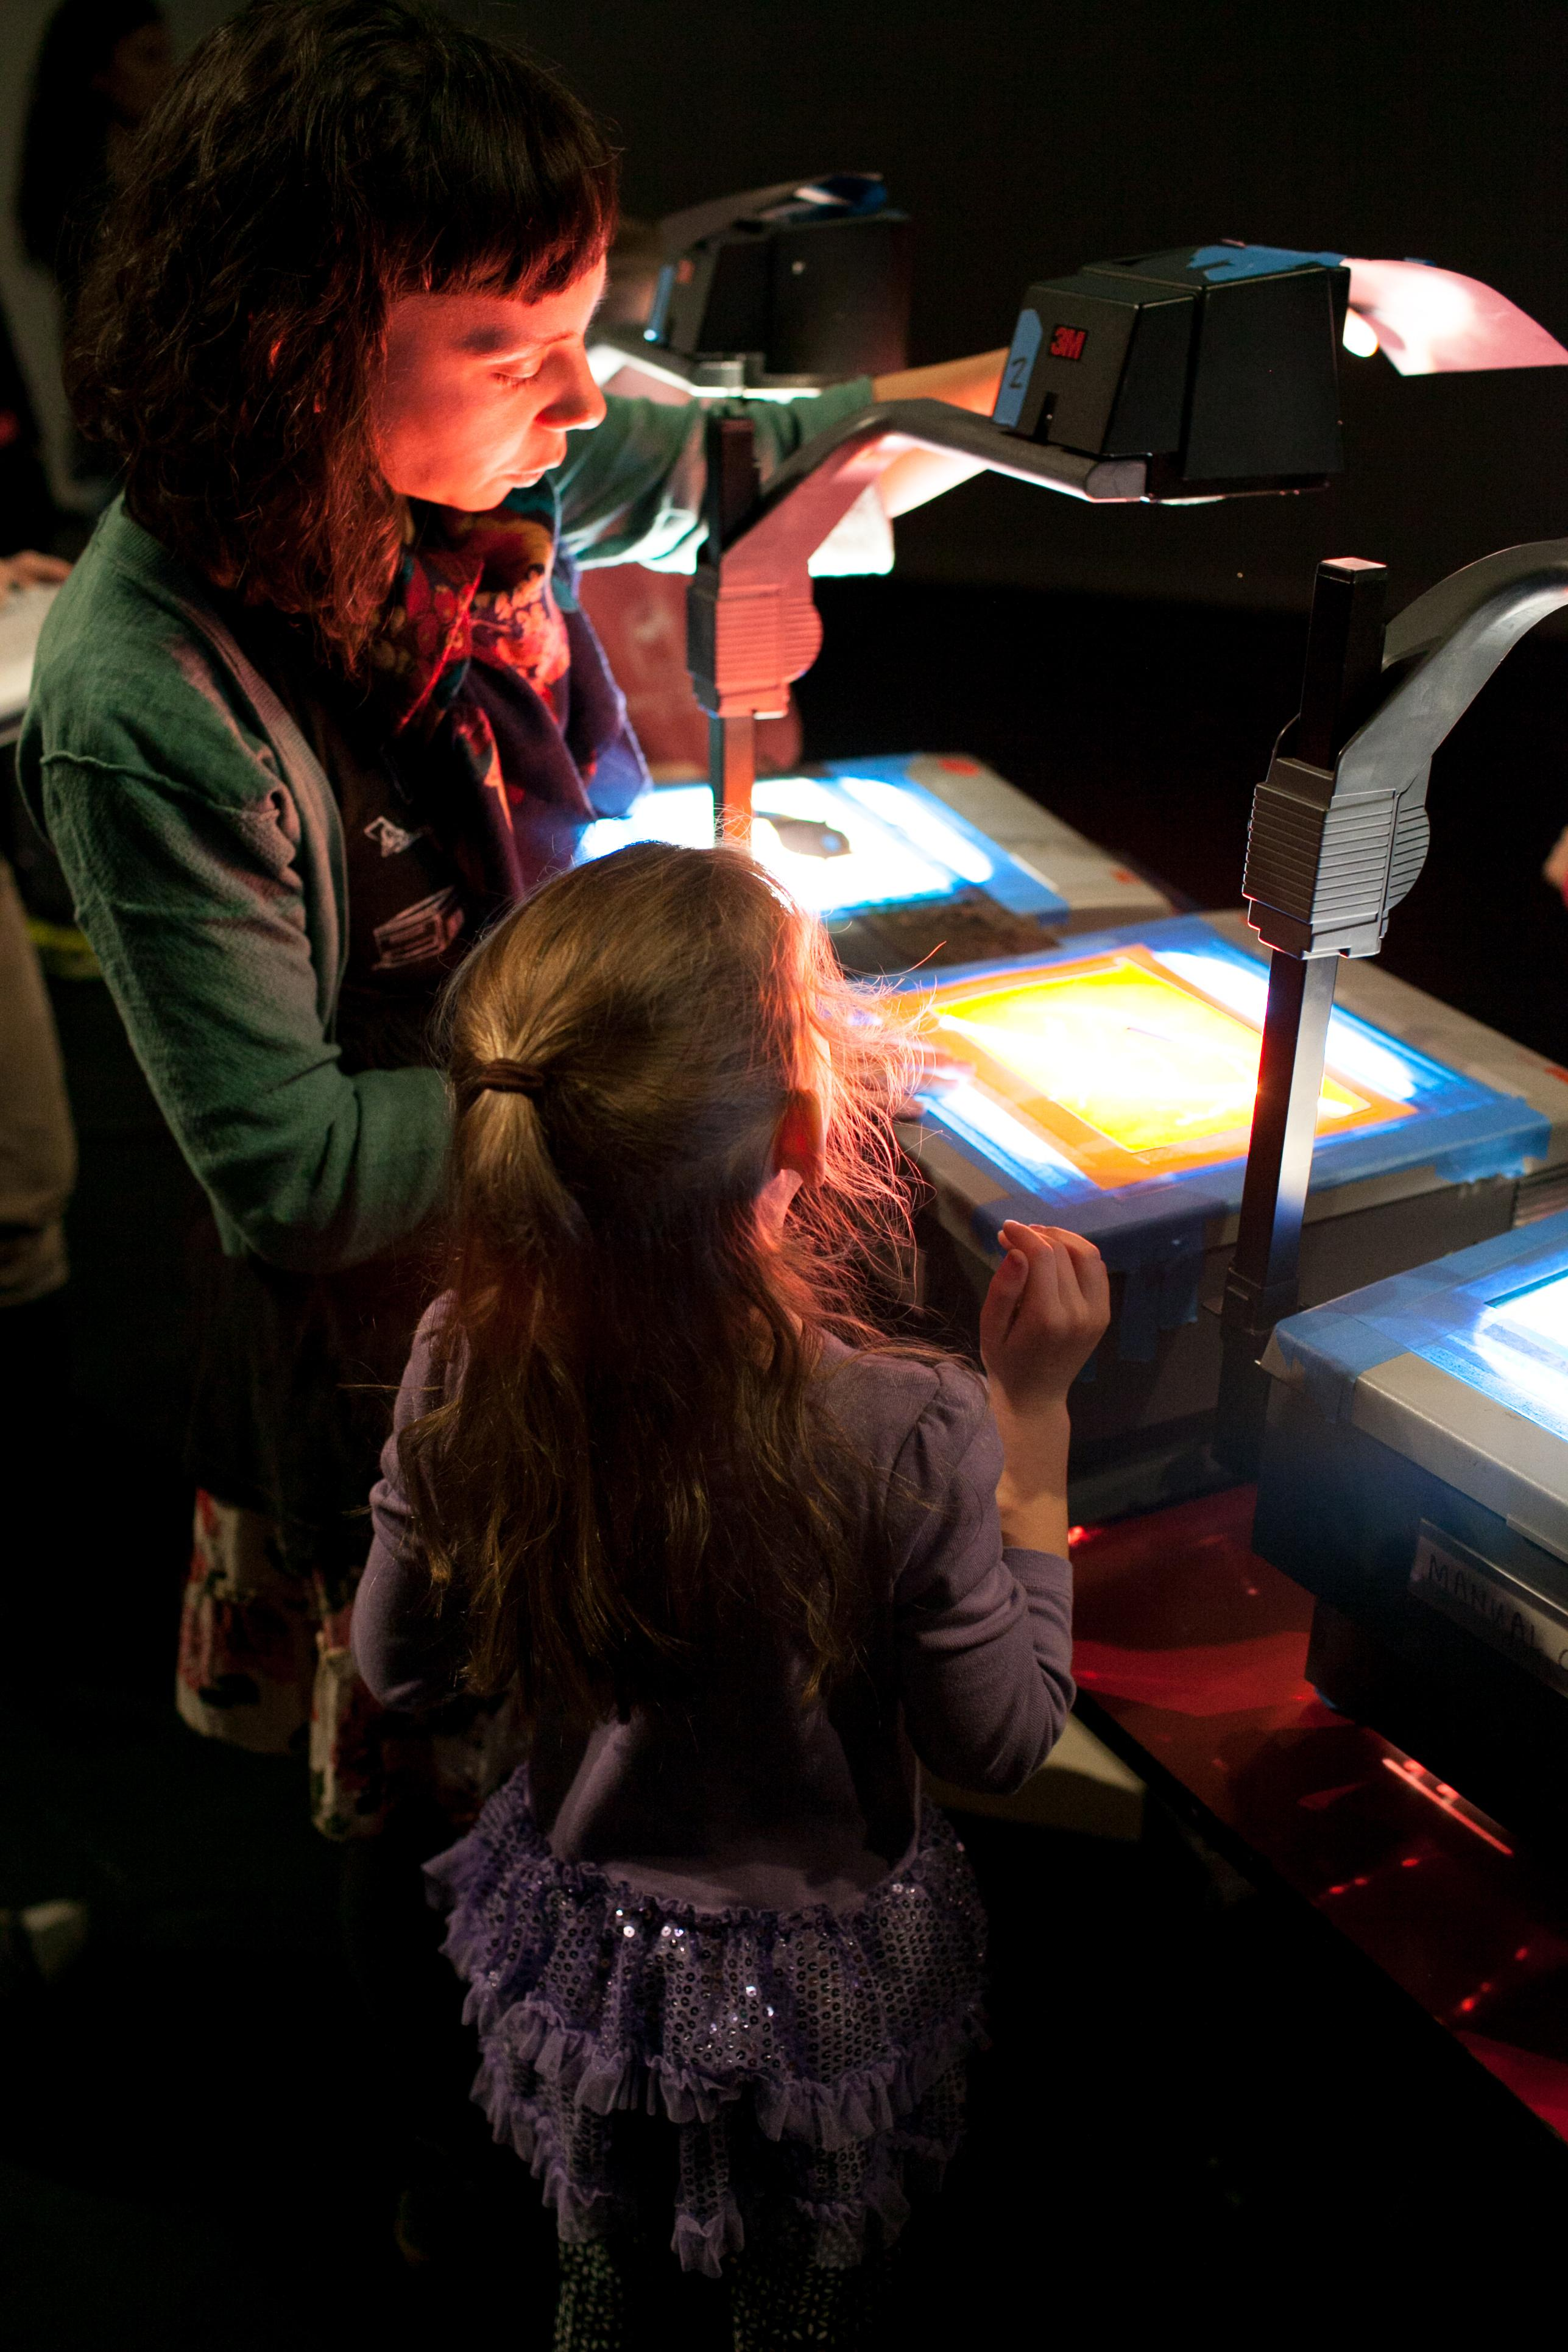 A woman and girl position a transparency on an overhead projector.